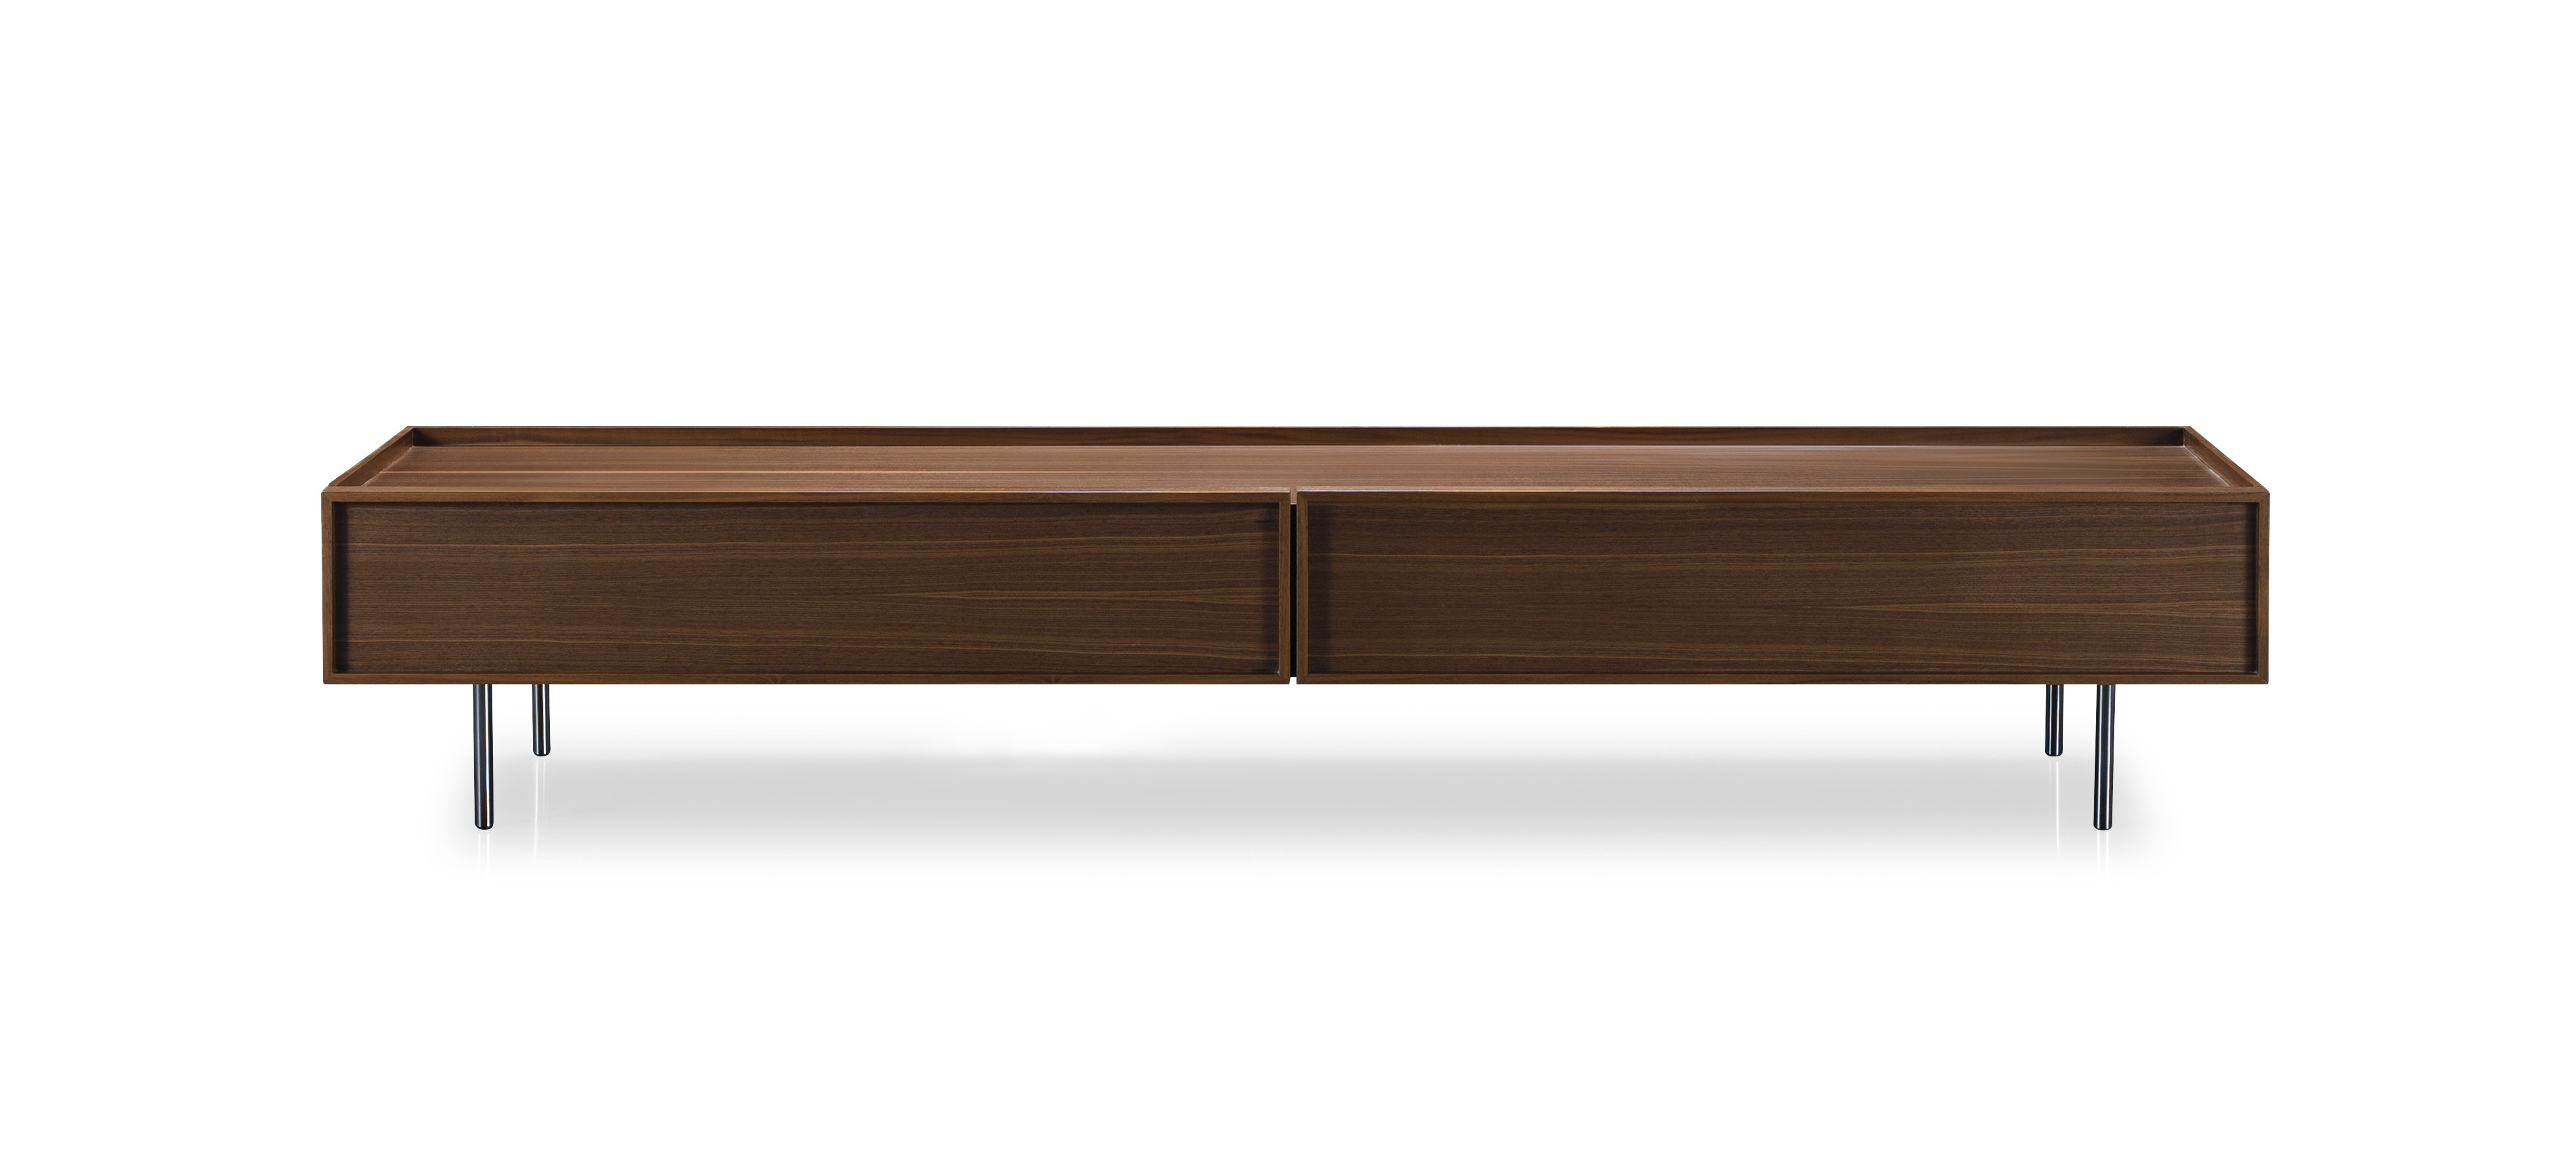 FRAME TV UNIT